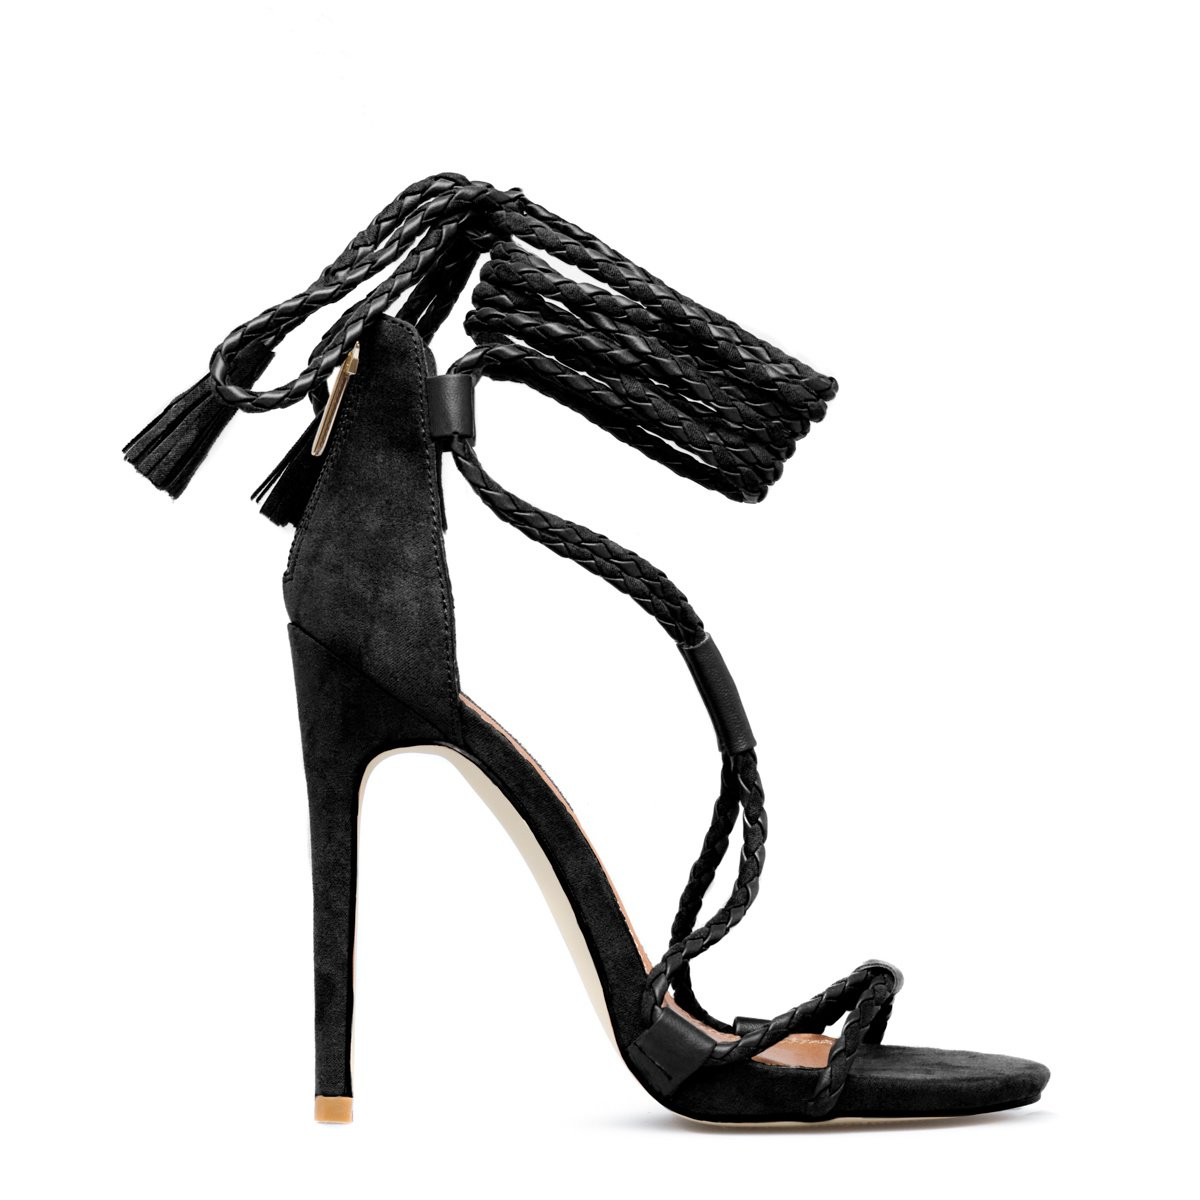 Cheap Strappy Sandals Heels